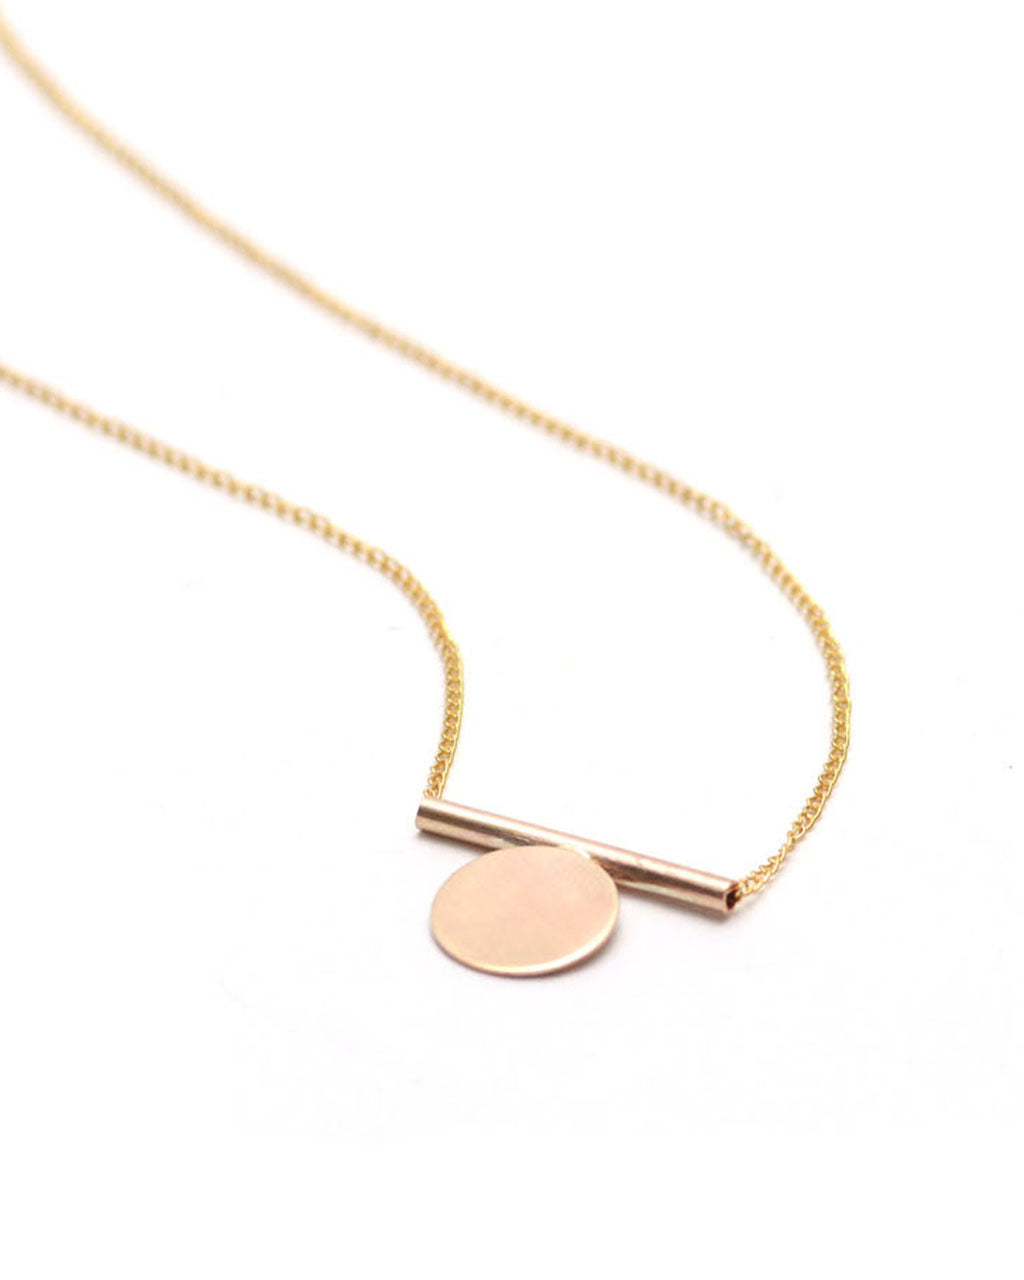 Minimal Mono Necklace | Favor Jewelry